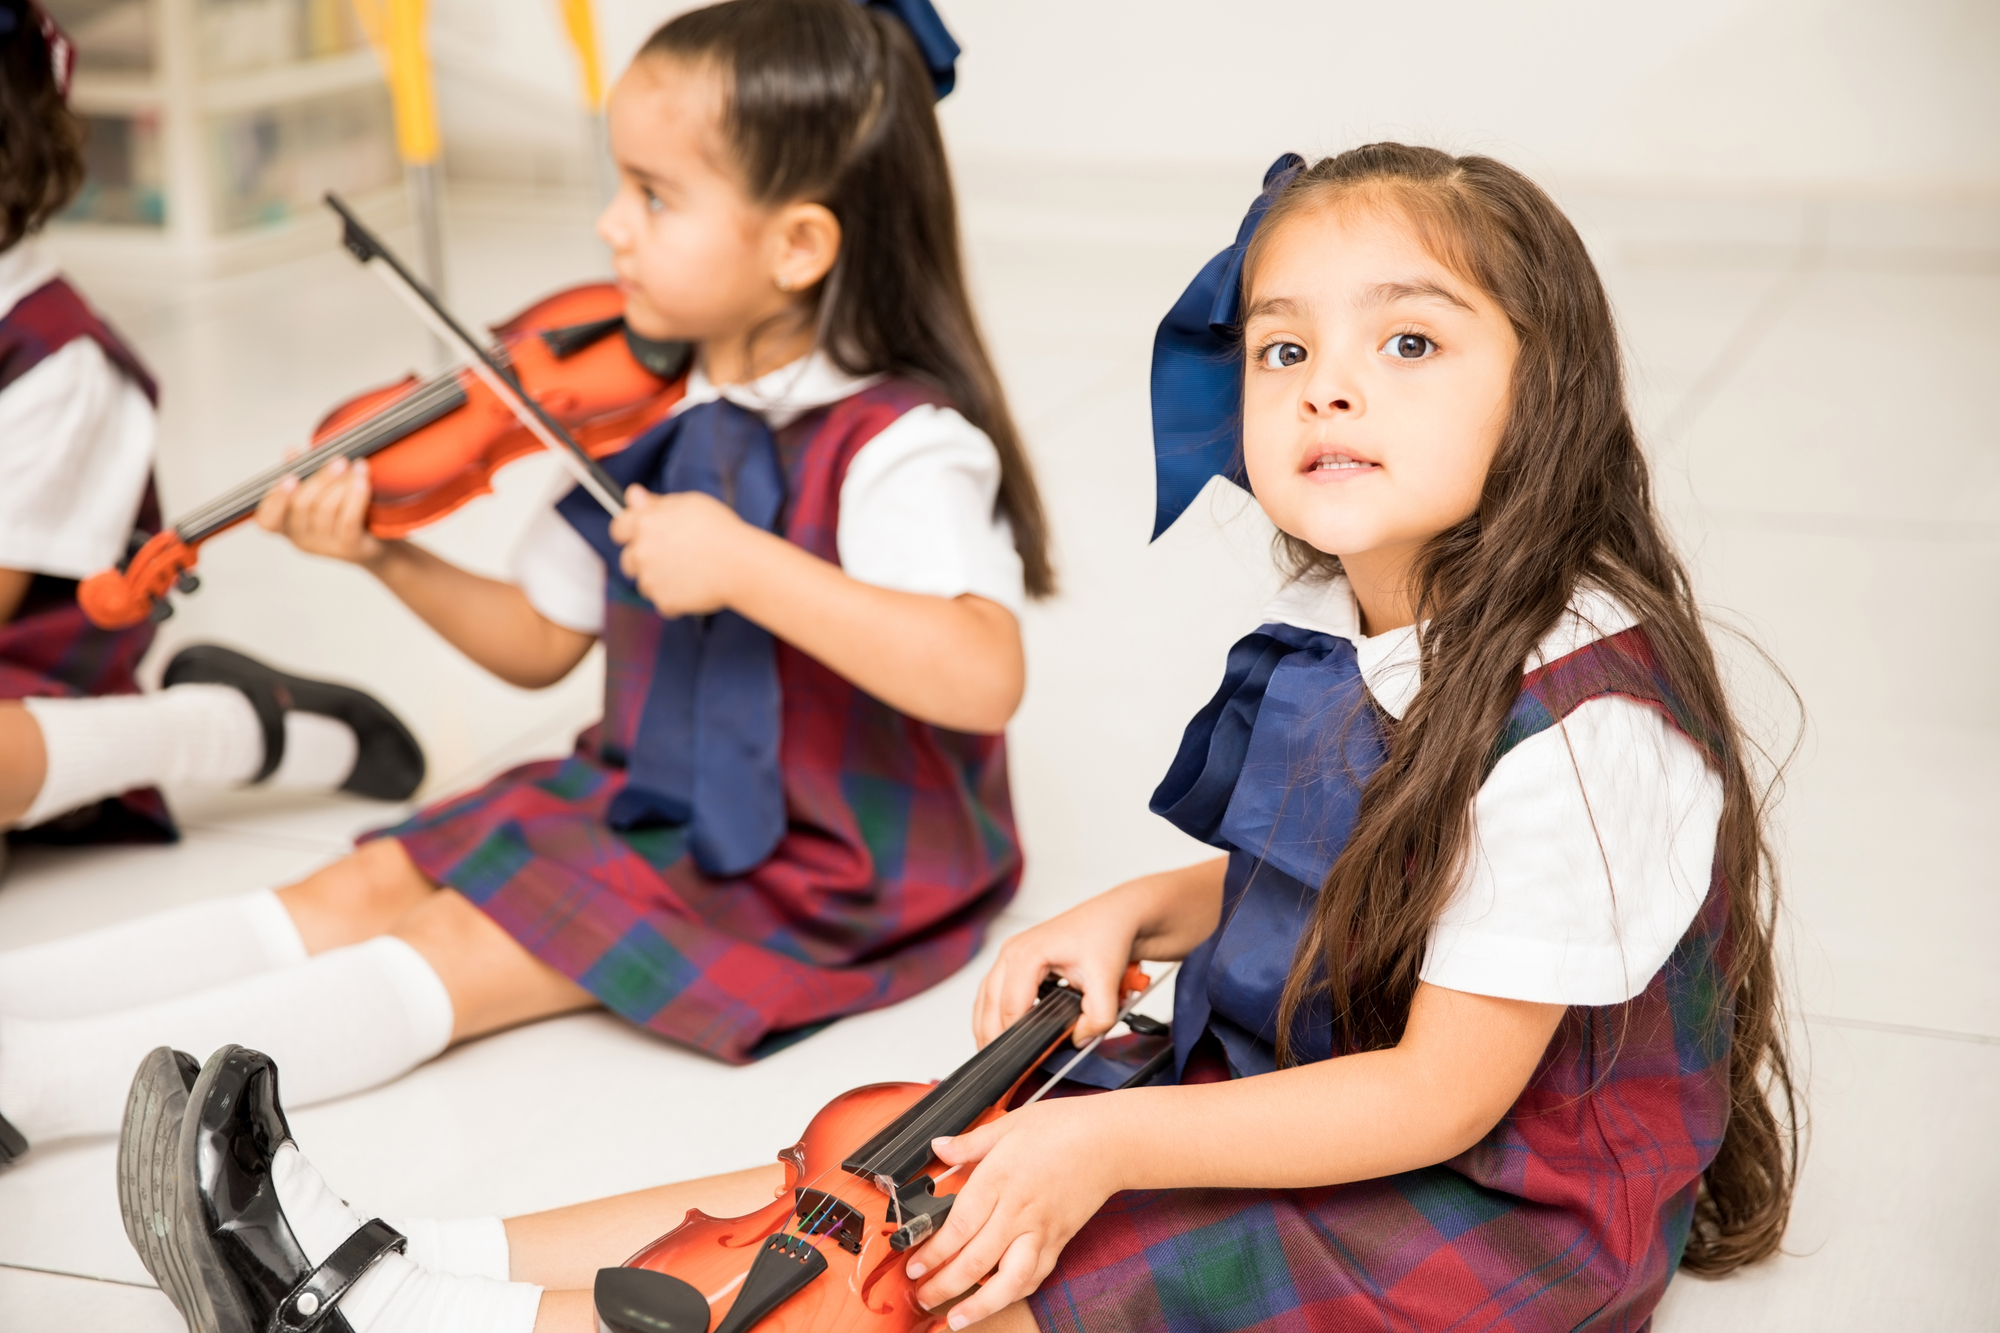 Violin lesson in NYC for kids